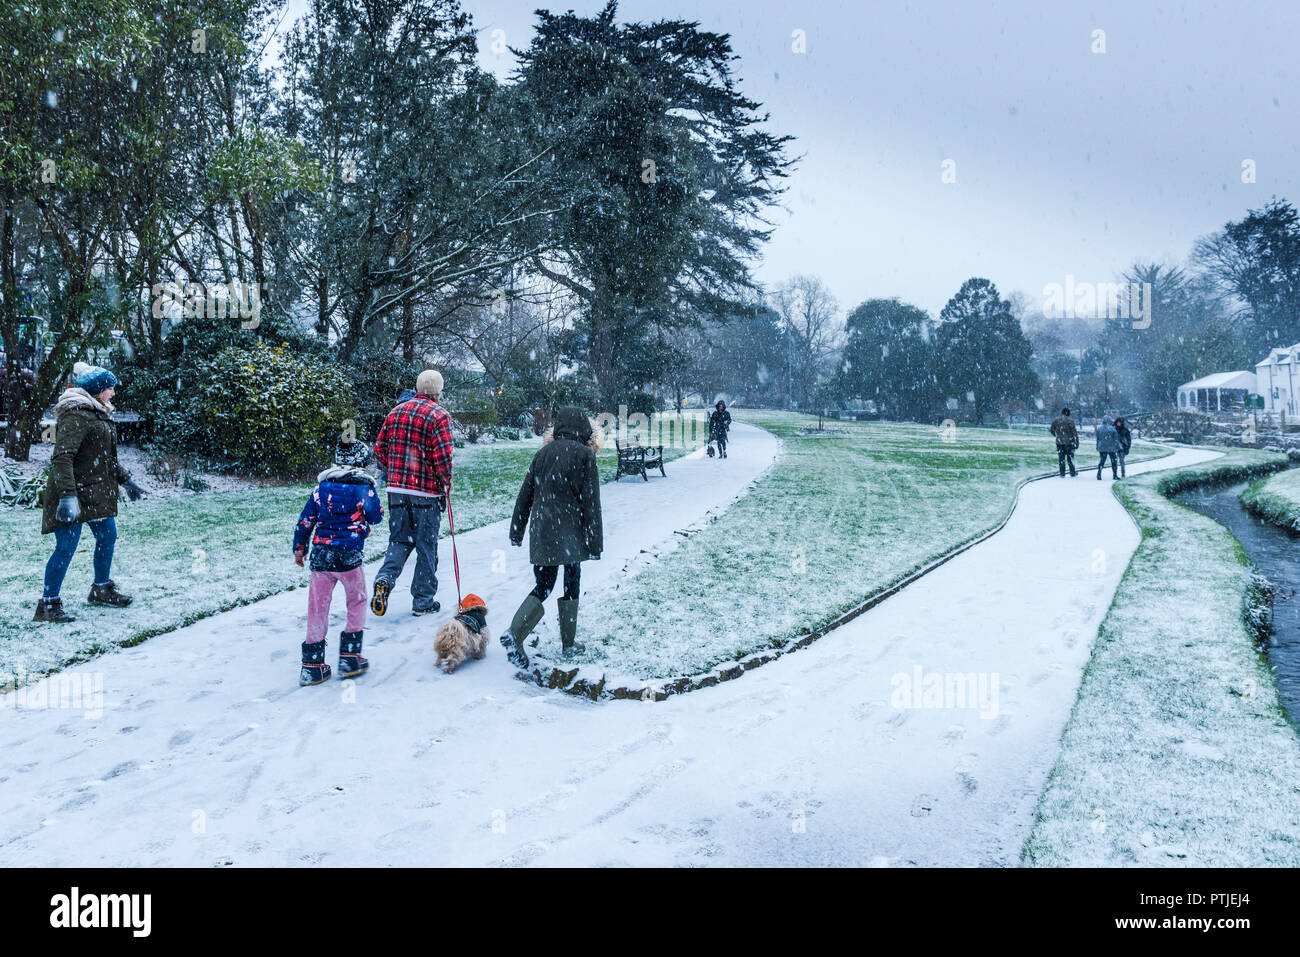 A family walking their dog through falling snow in Trenance Gardens in Newquay in Cornwall. - Stock Image